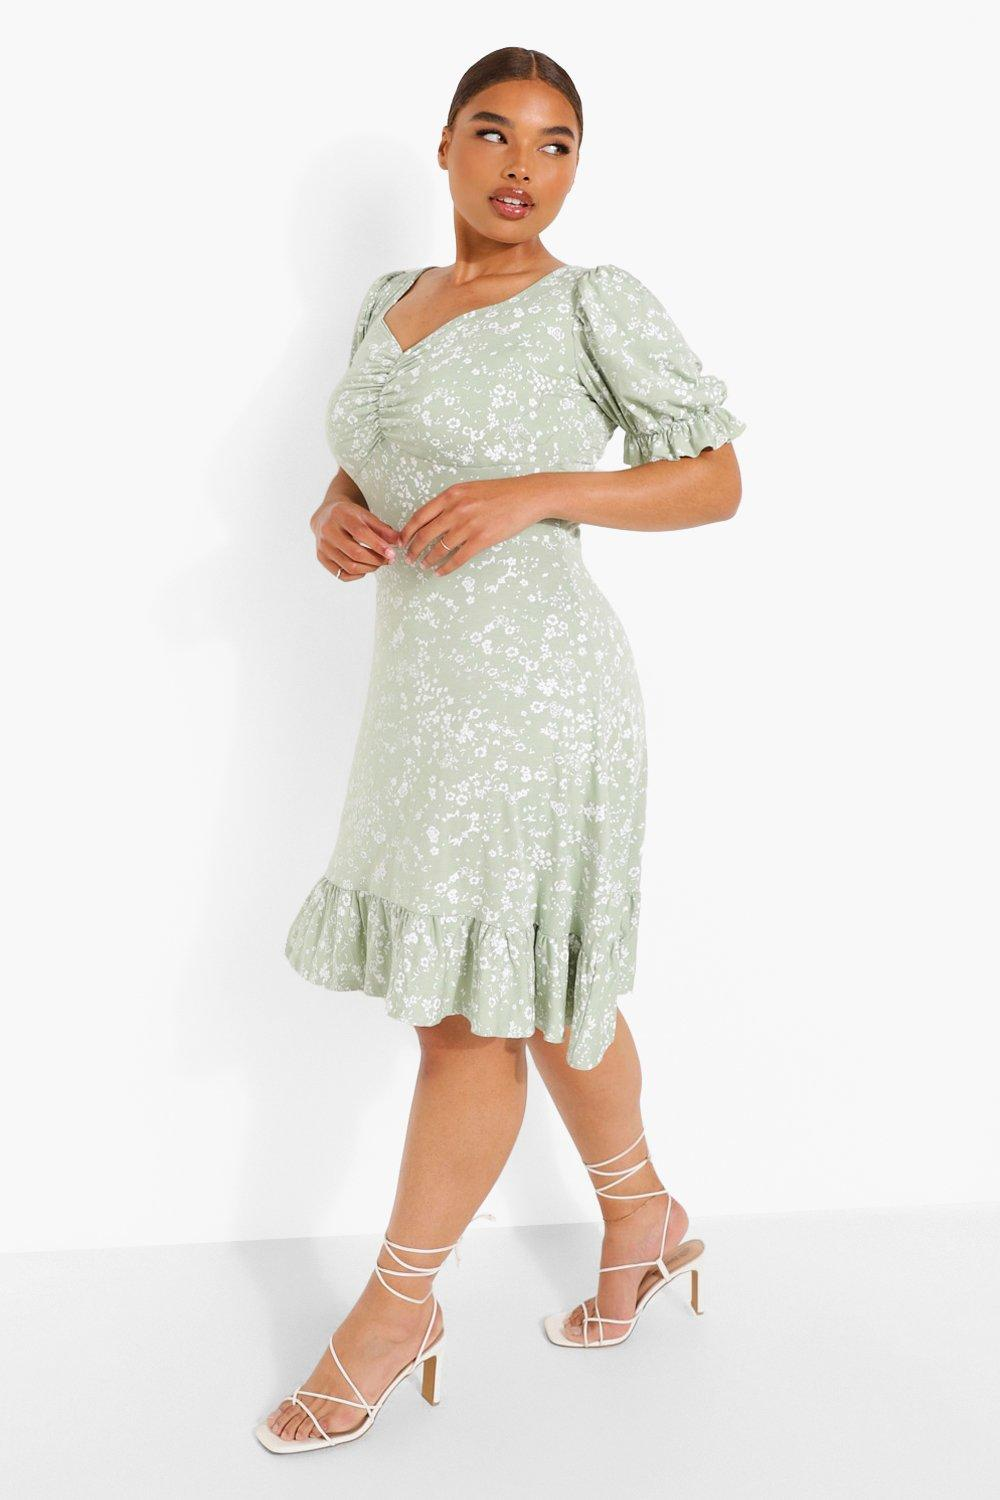 1980s Clothing, Fashion | 80s Style Clothes Womens Plus Floral Print Lace Up Back Skater Dress - Green - 16 $16.00 AT vintagedancer.com